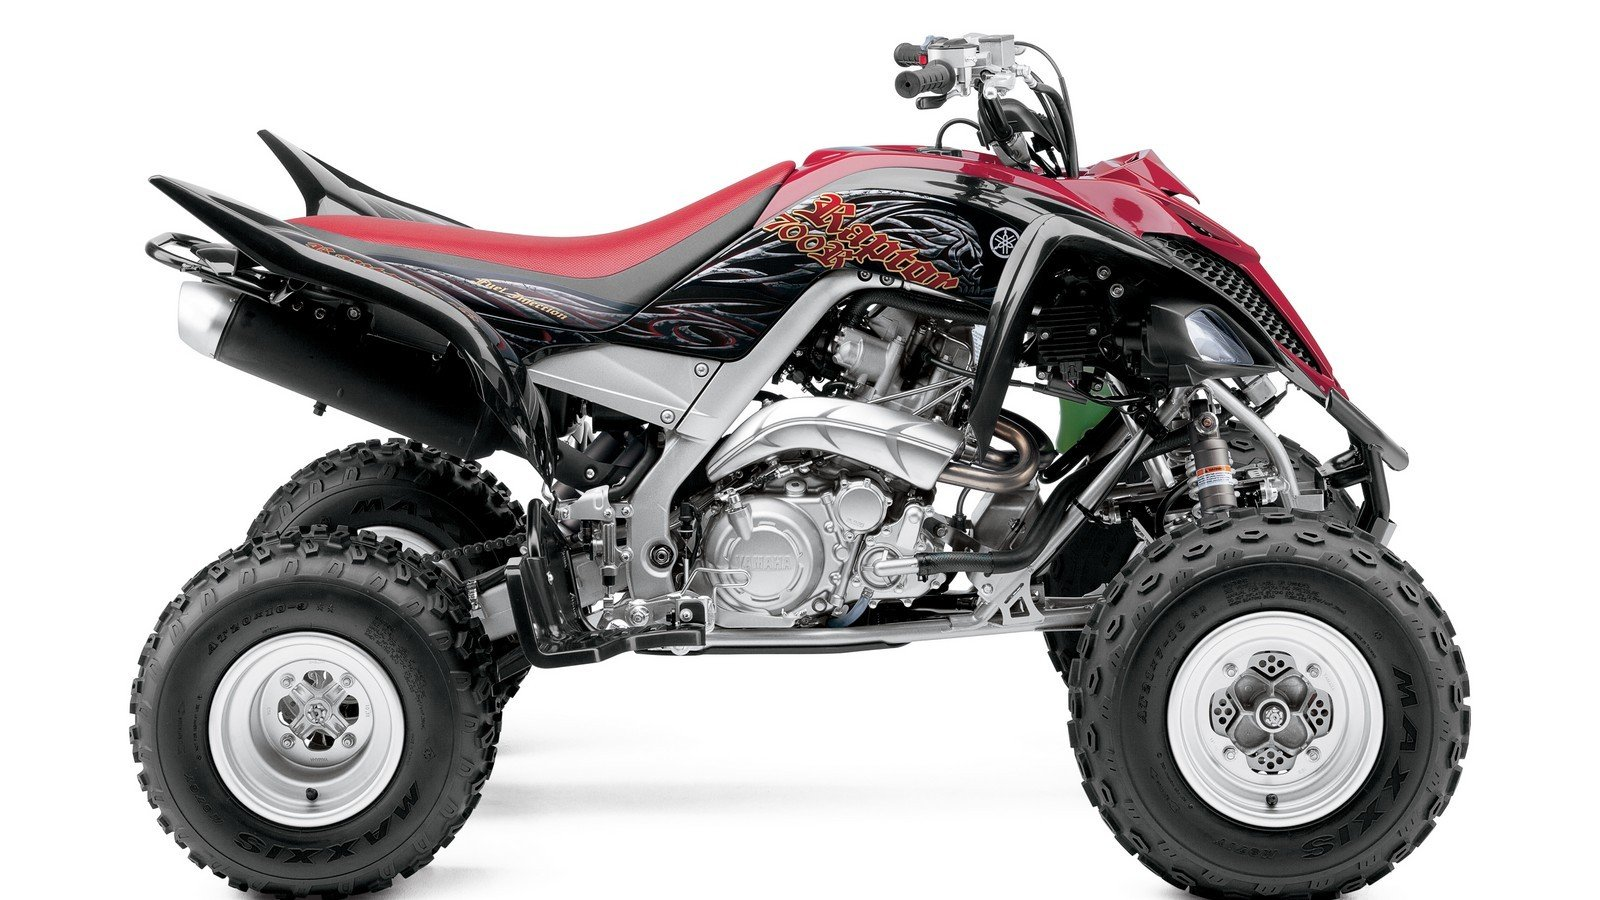 2013 yamaha raptor 700r se picture 465173 motorcycle